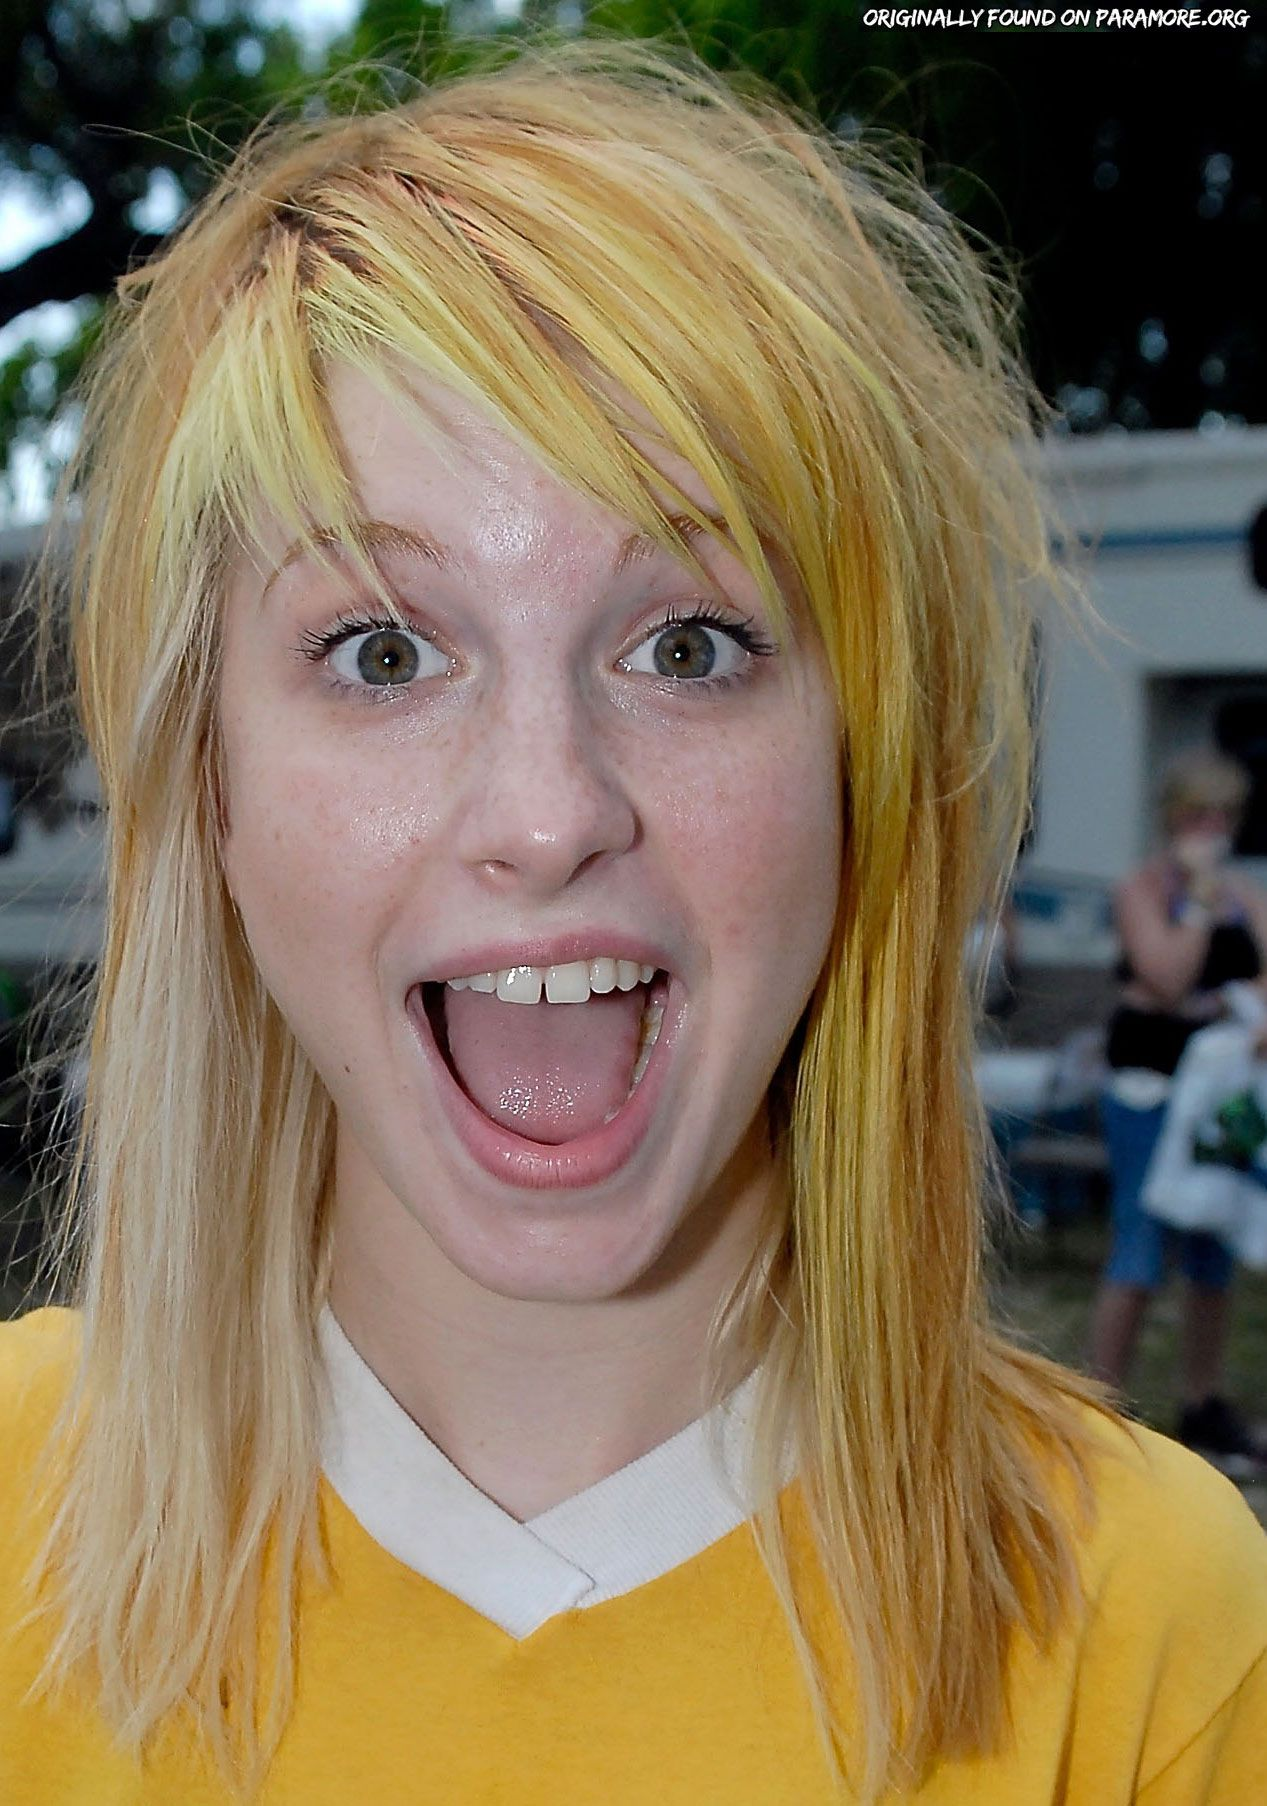 Young Hayley Williams nudes (85 photos), Twitter